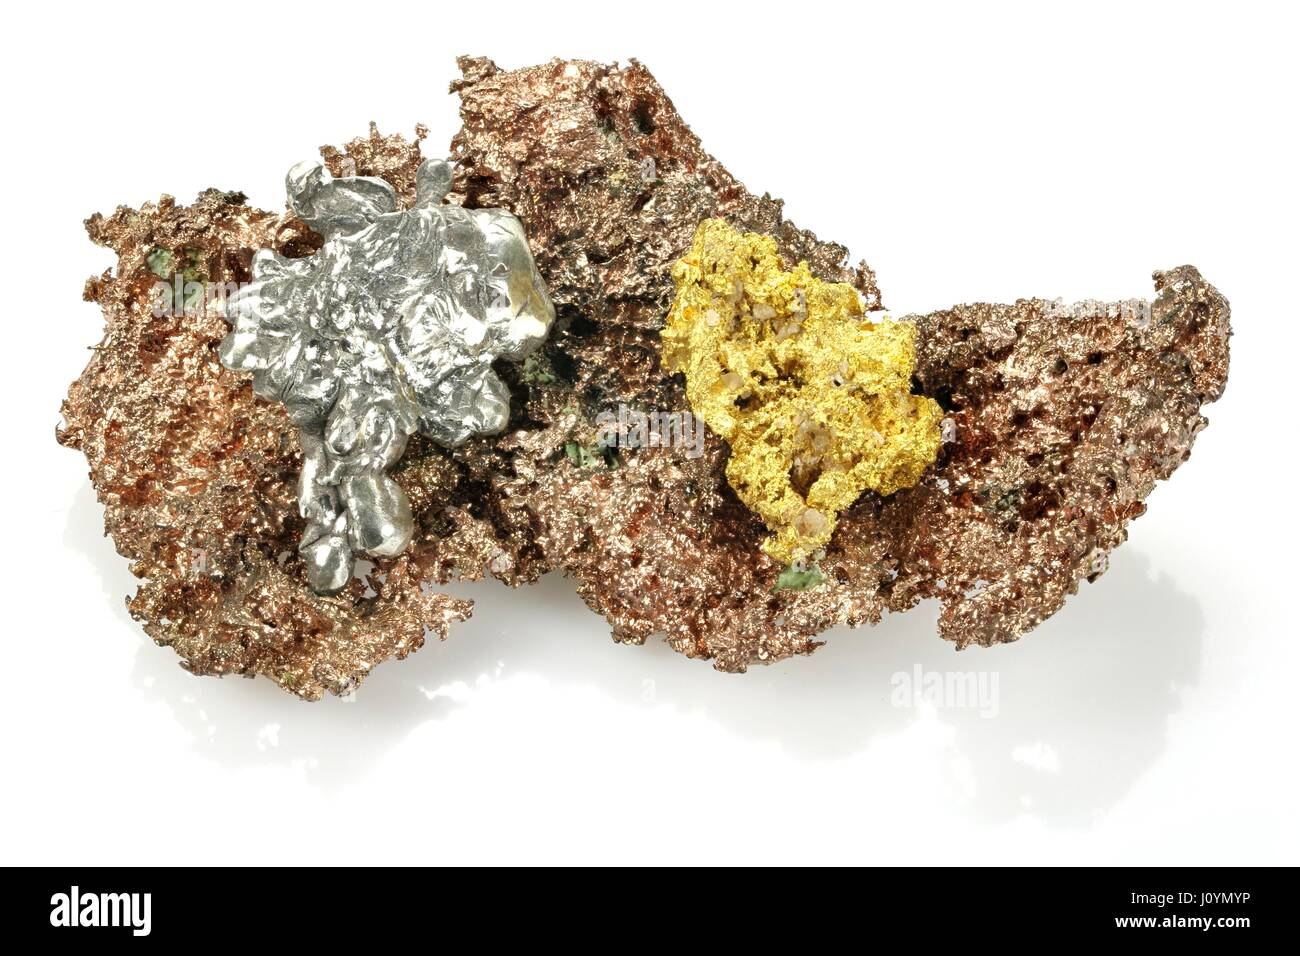 Gold And Copper : Gold silver and copper nuggets isolated on white background stock